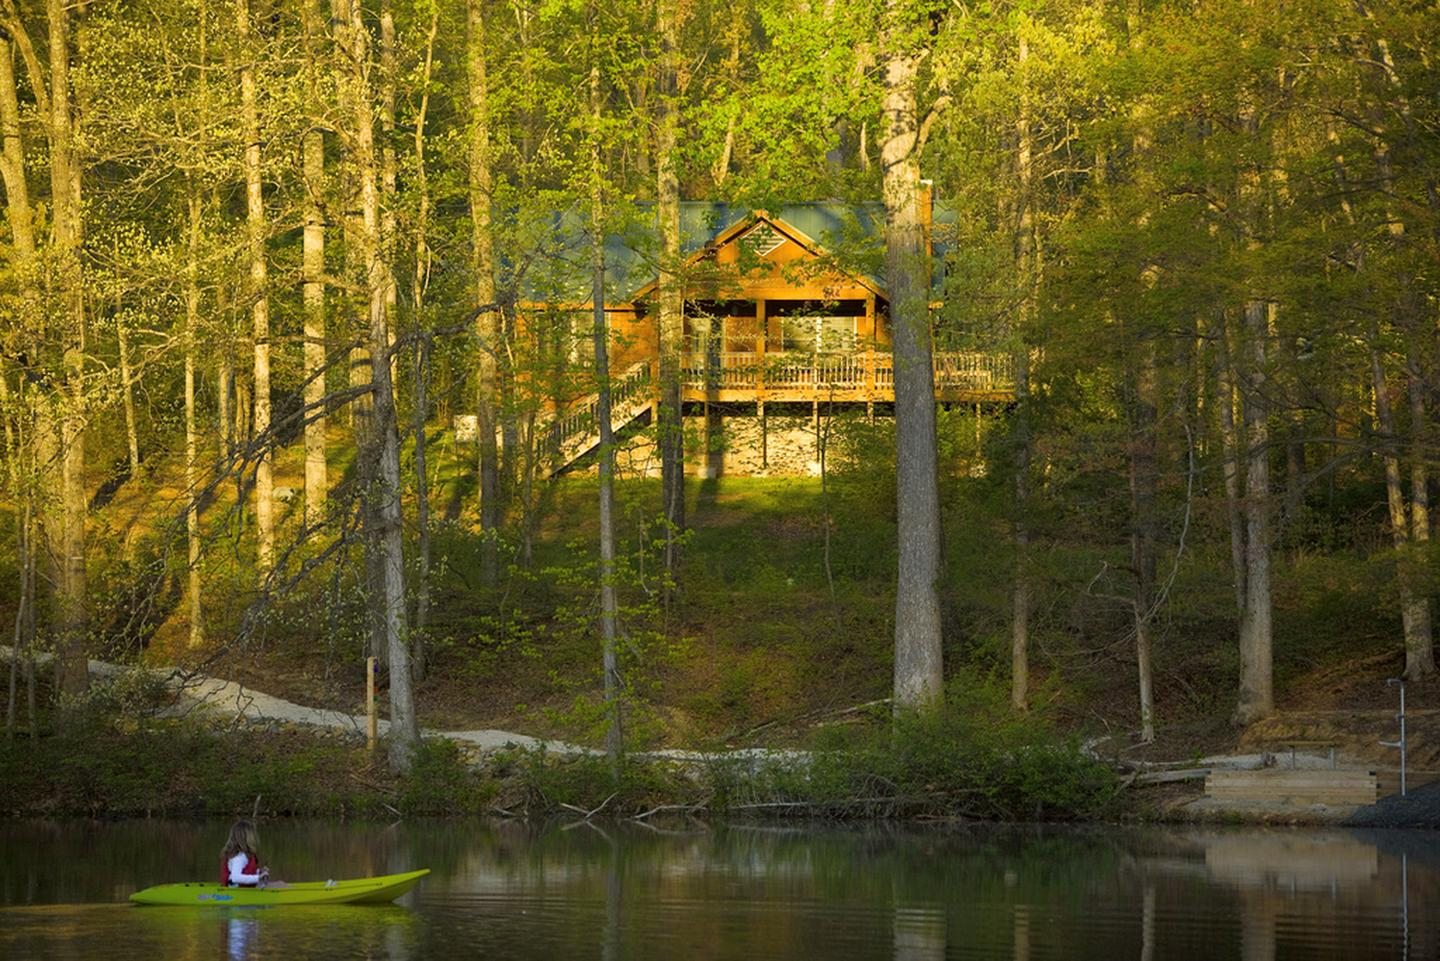 Kayaking with a view of a rental cabin at Bear Creek Lake State Park